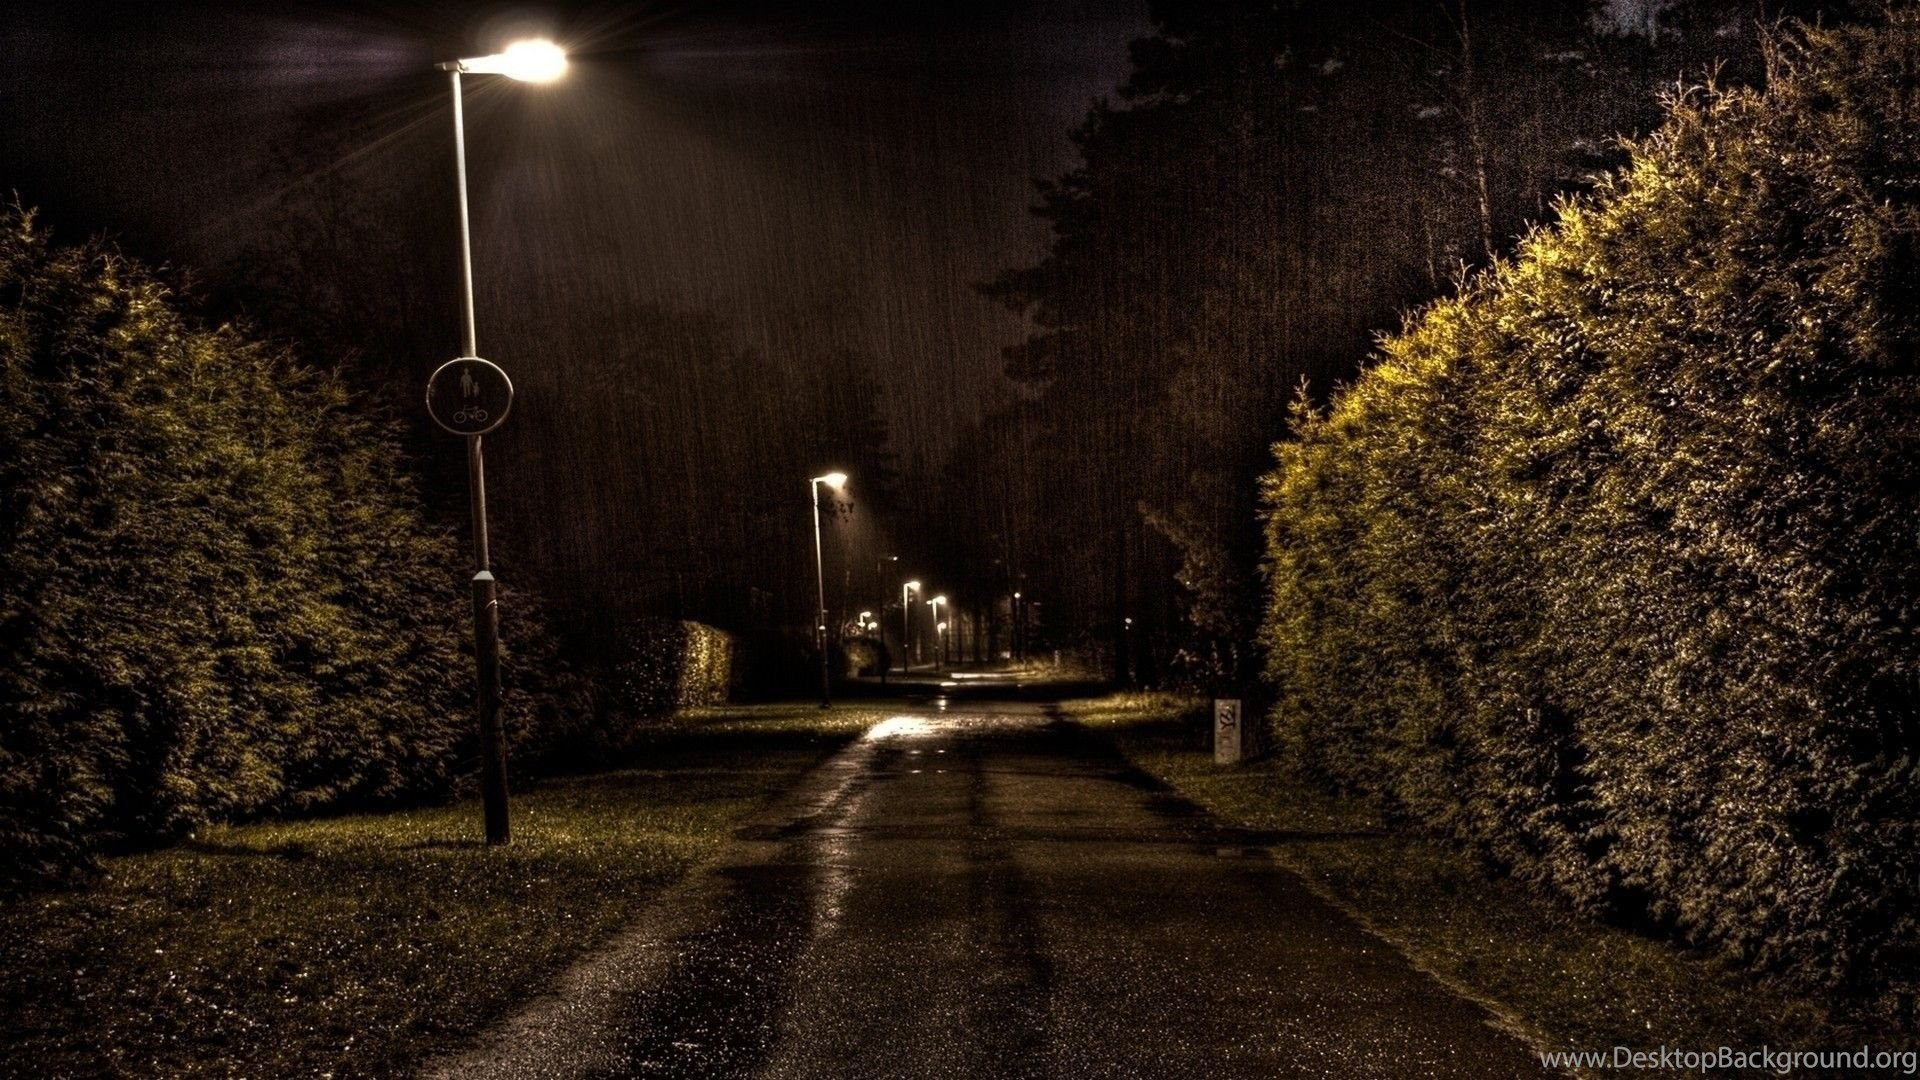 Gallery for night rain wallpapers hd desktop background - Rainy hd wallpaper for pc ...